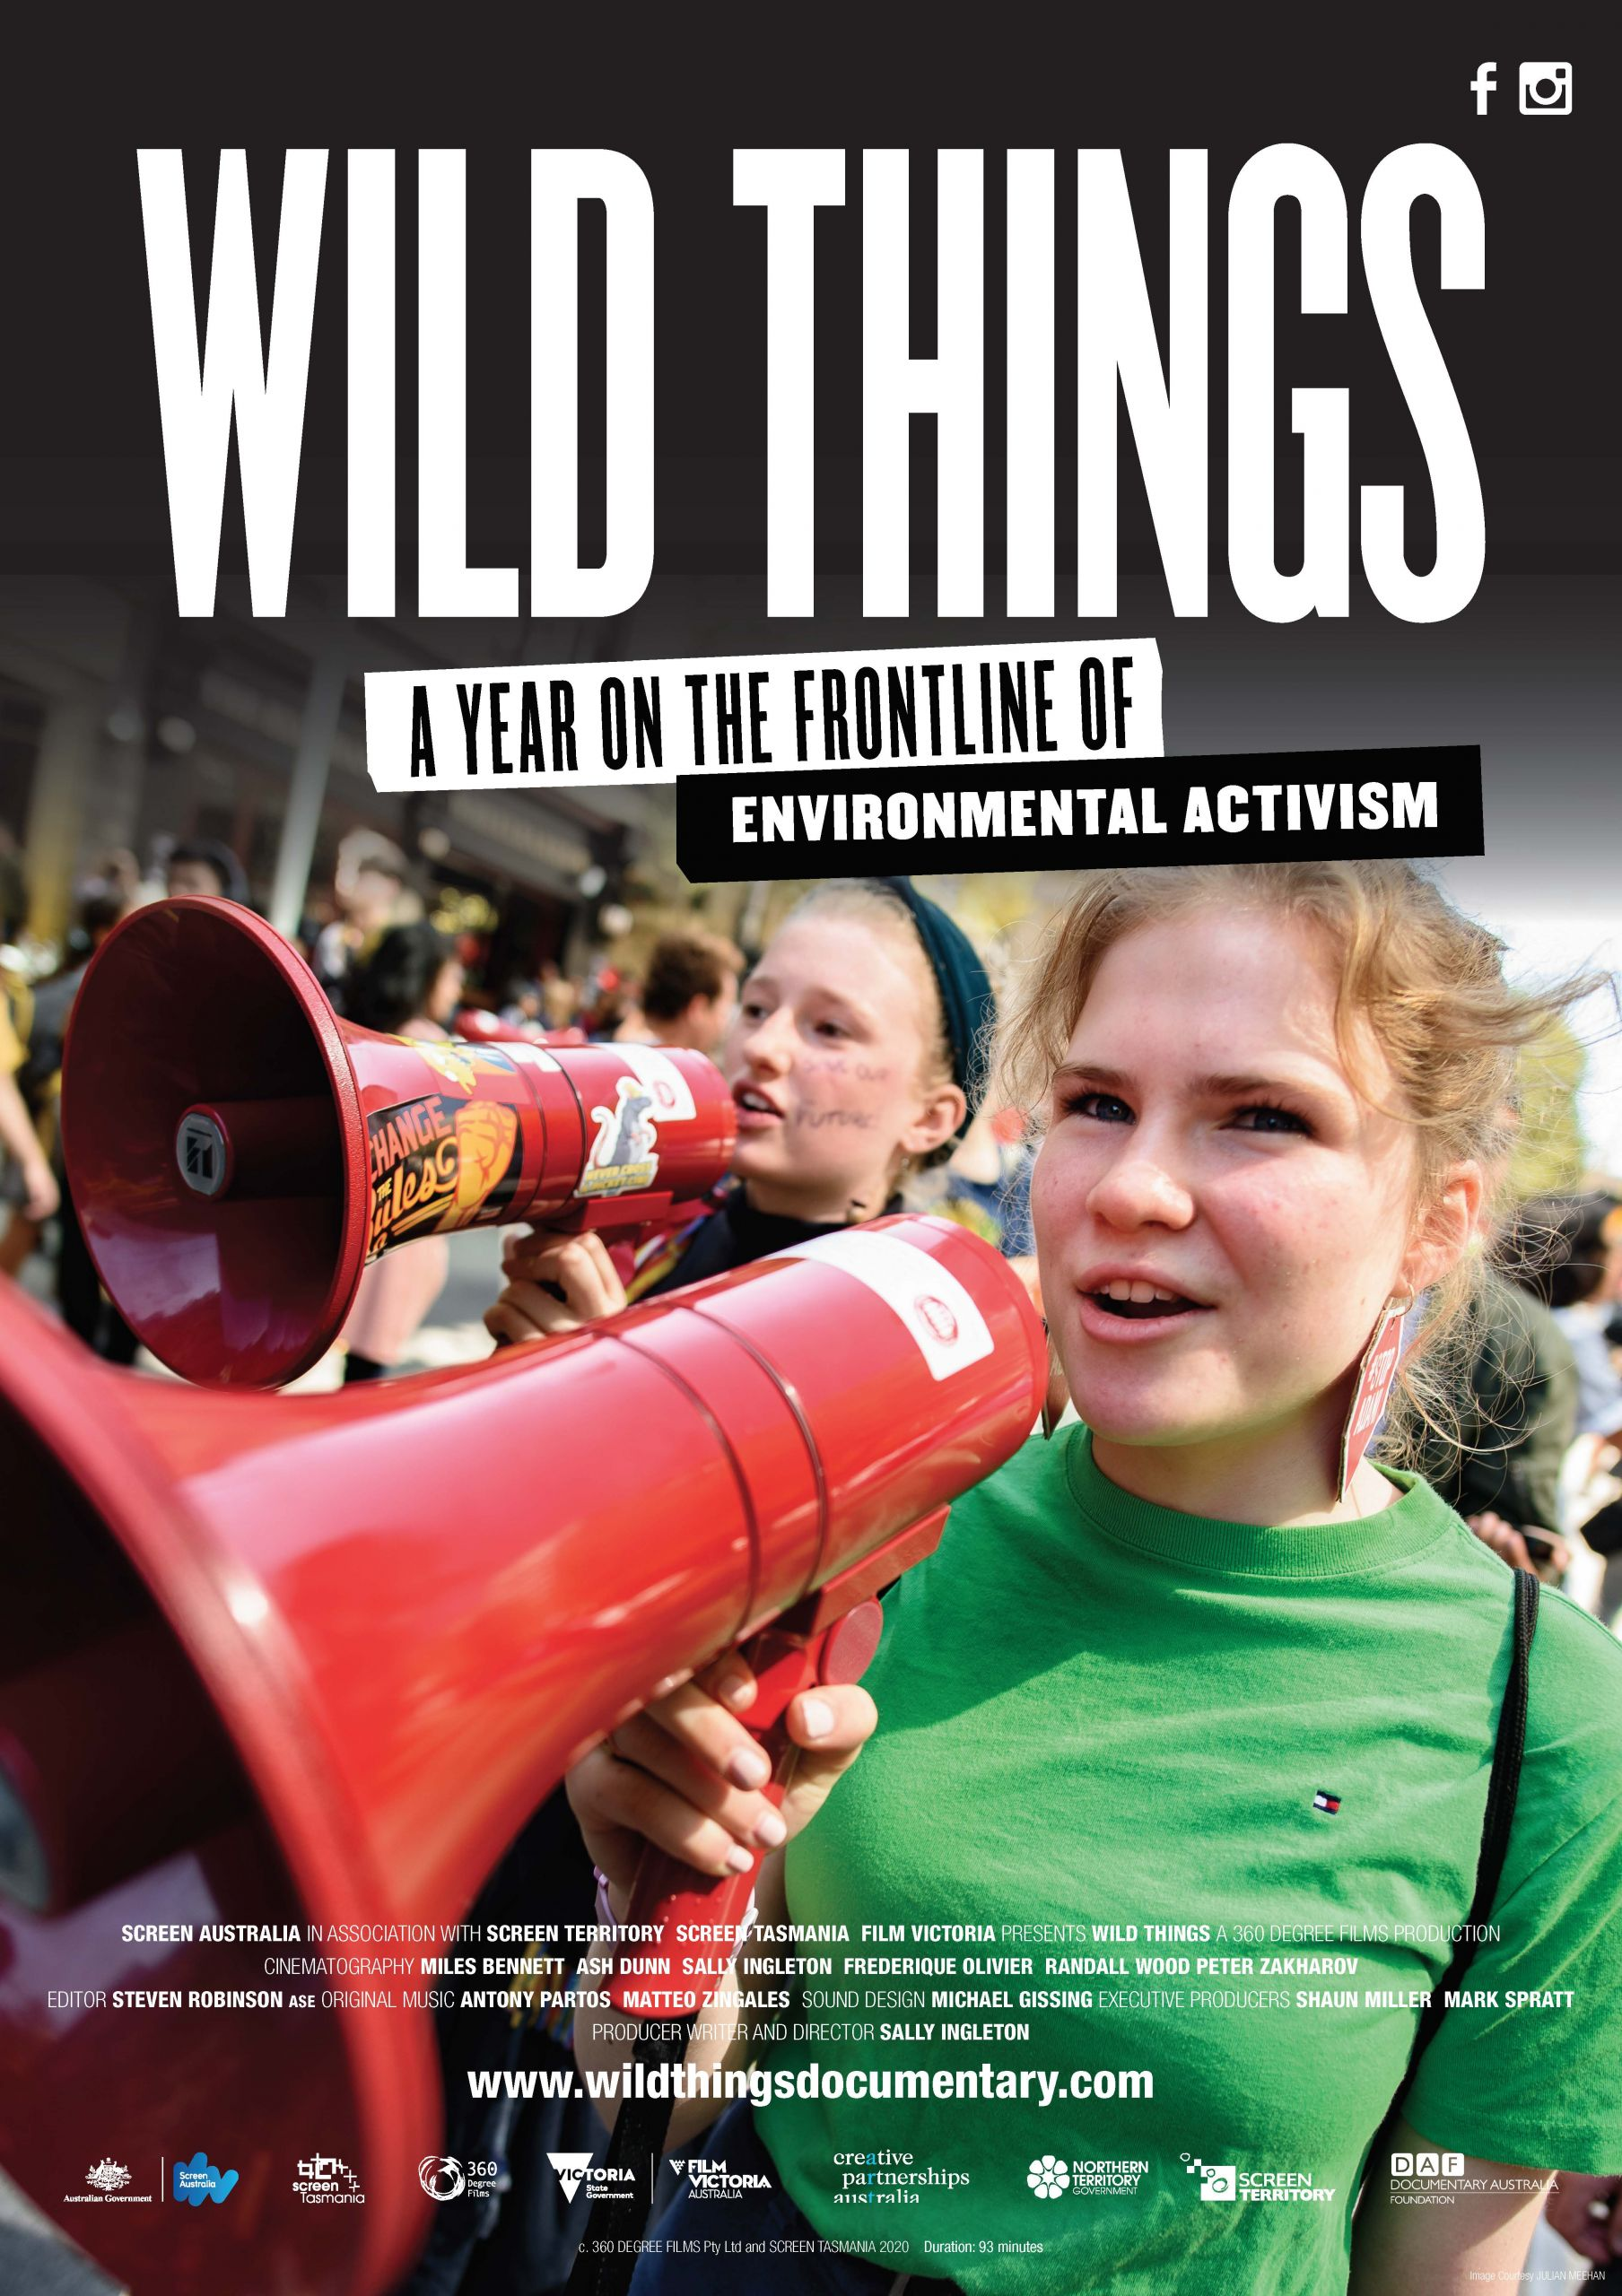 Wild Things: A Year on the Frontline of Environmental Activism